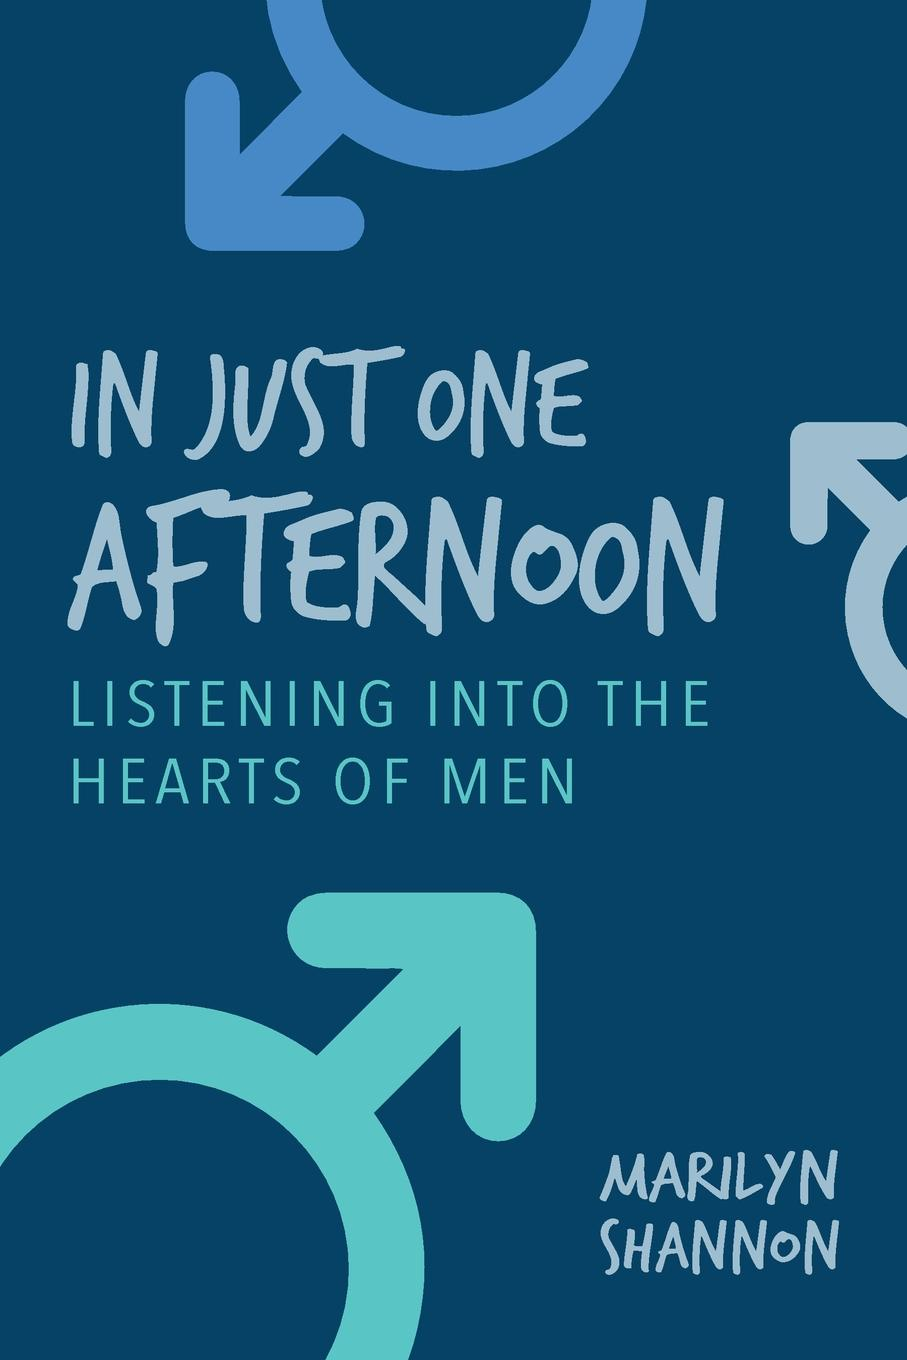 Marilyn Shannon In Just One Afternoon. Listening Into the Hearts of Men